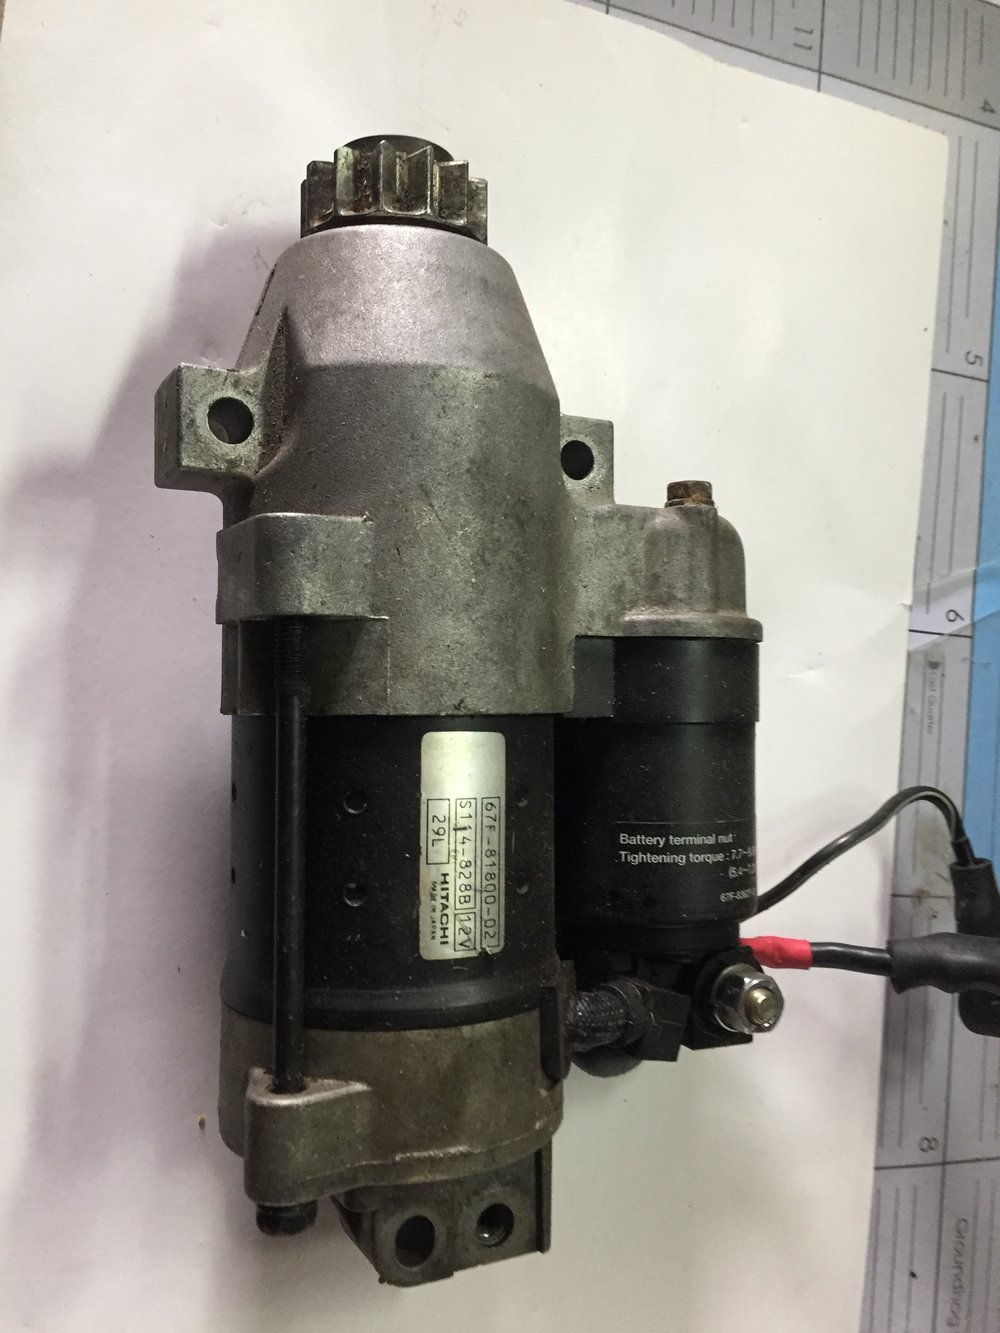 Yamaha Four Stroke Starter - Part number: 67f-81800-02Hitachi S114-828BWorks great, Off yamaha F115, F100$199.00